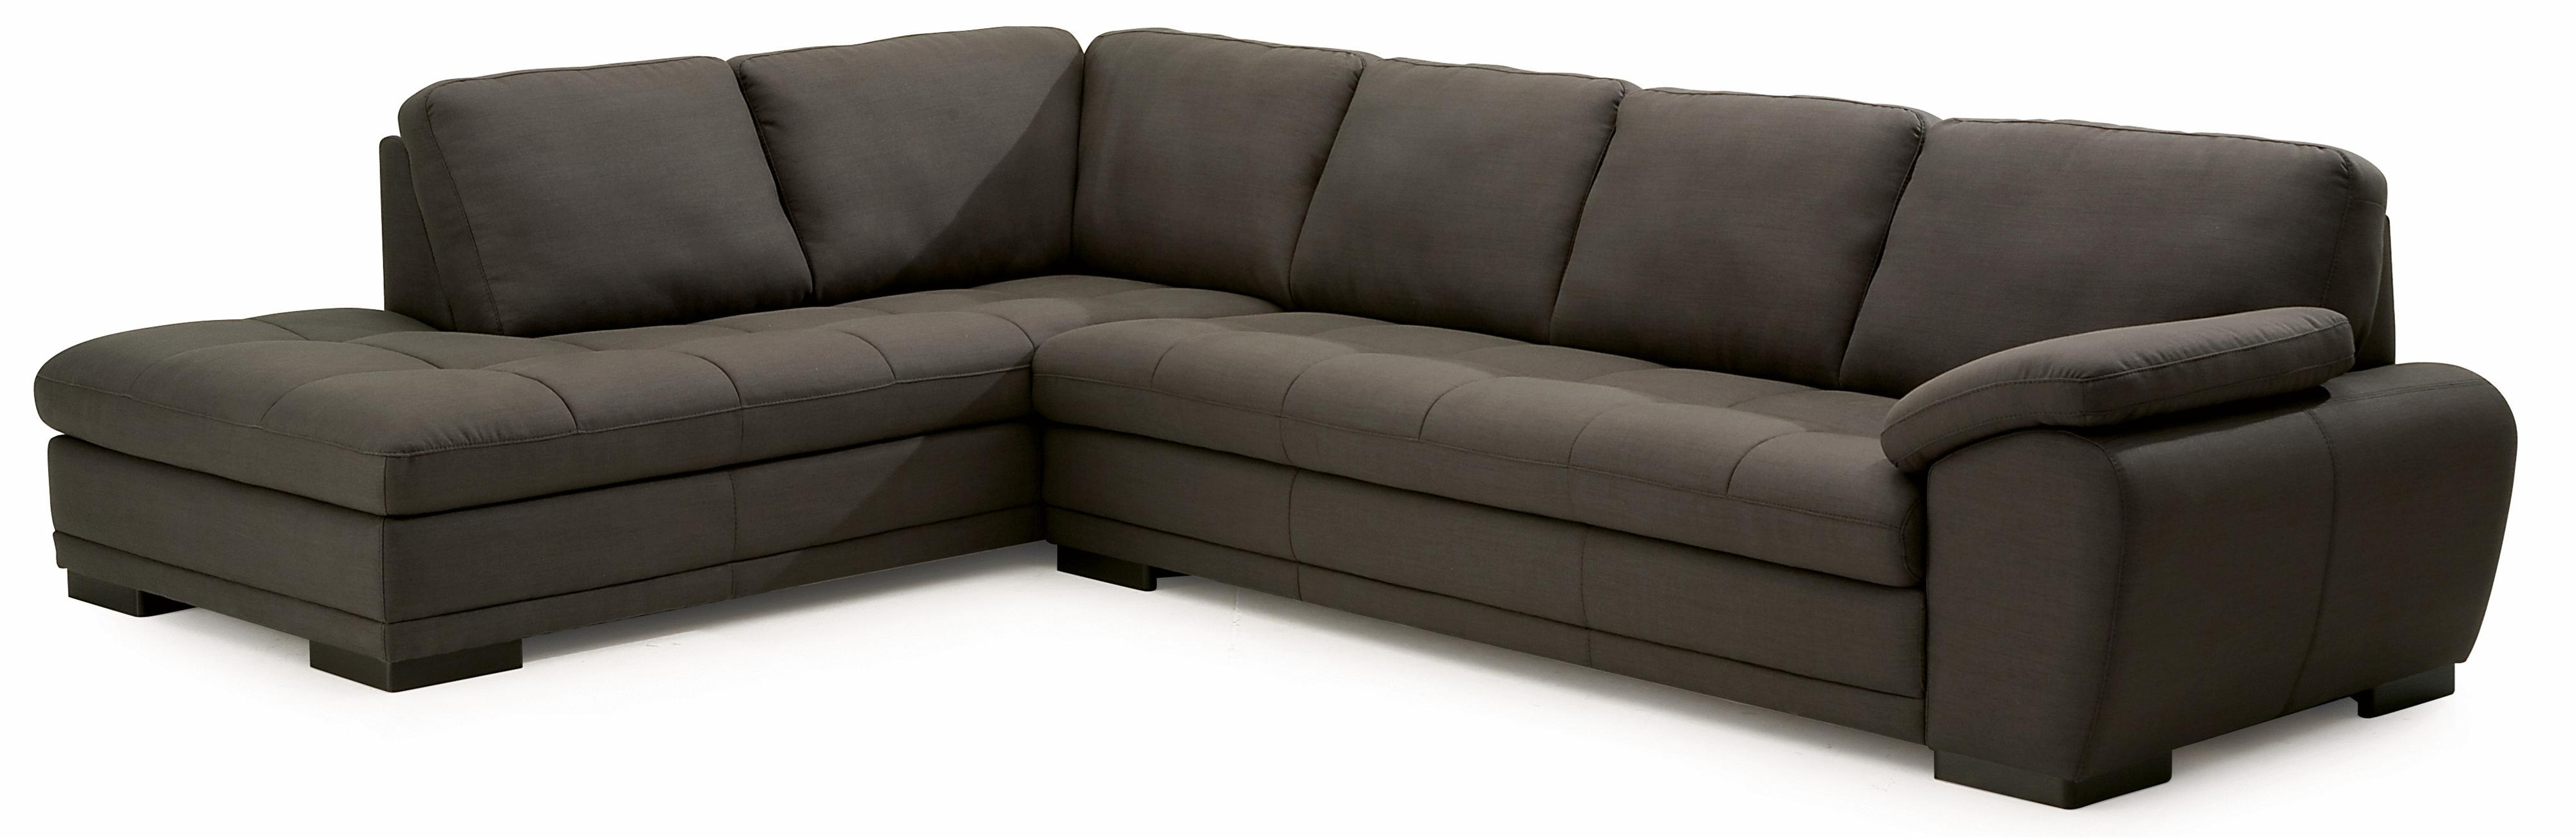 Newest Sectional Sofa Design: Beautiful Sectional Sofas Miami Modern With Sleek Sectional Sofas (View 11 of 20)